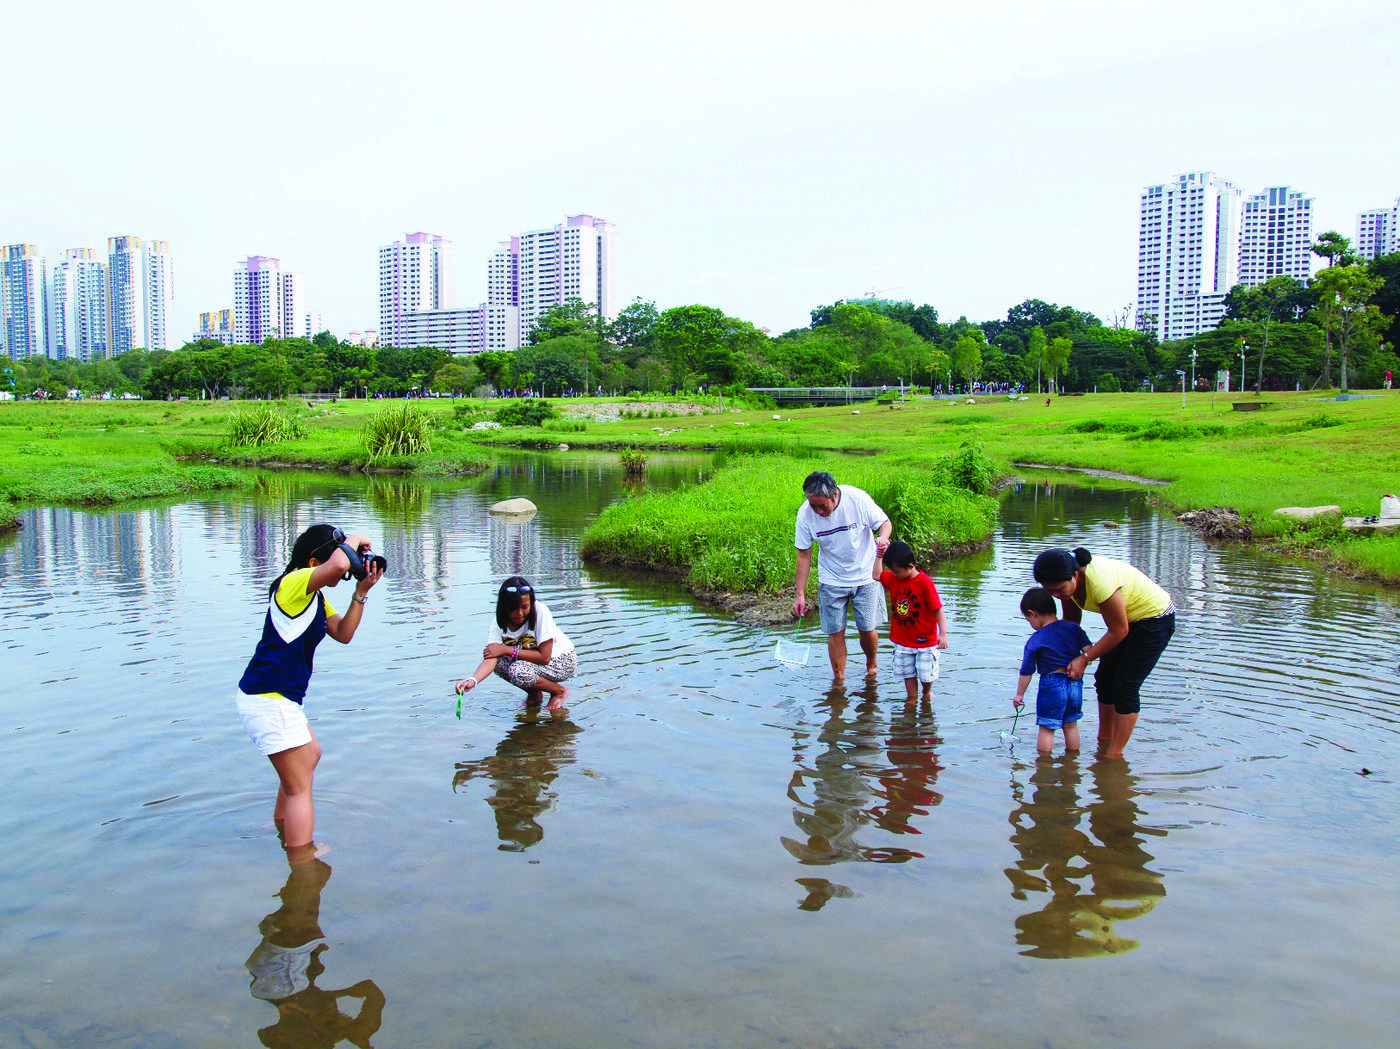 Maintaining our precious environmental heritage – a view of the Central Catchment Nature Reserve and Bishan- Ang Mo Kio Park.